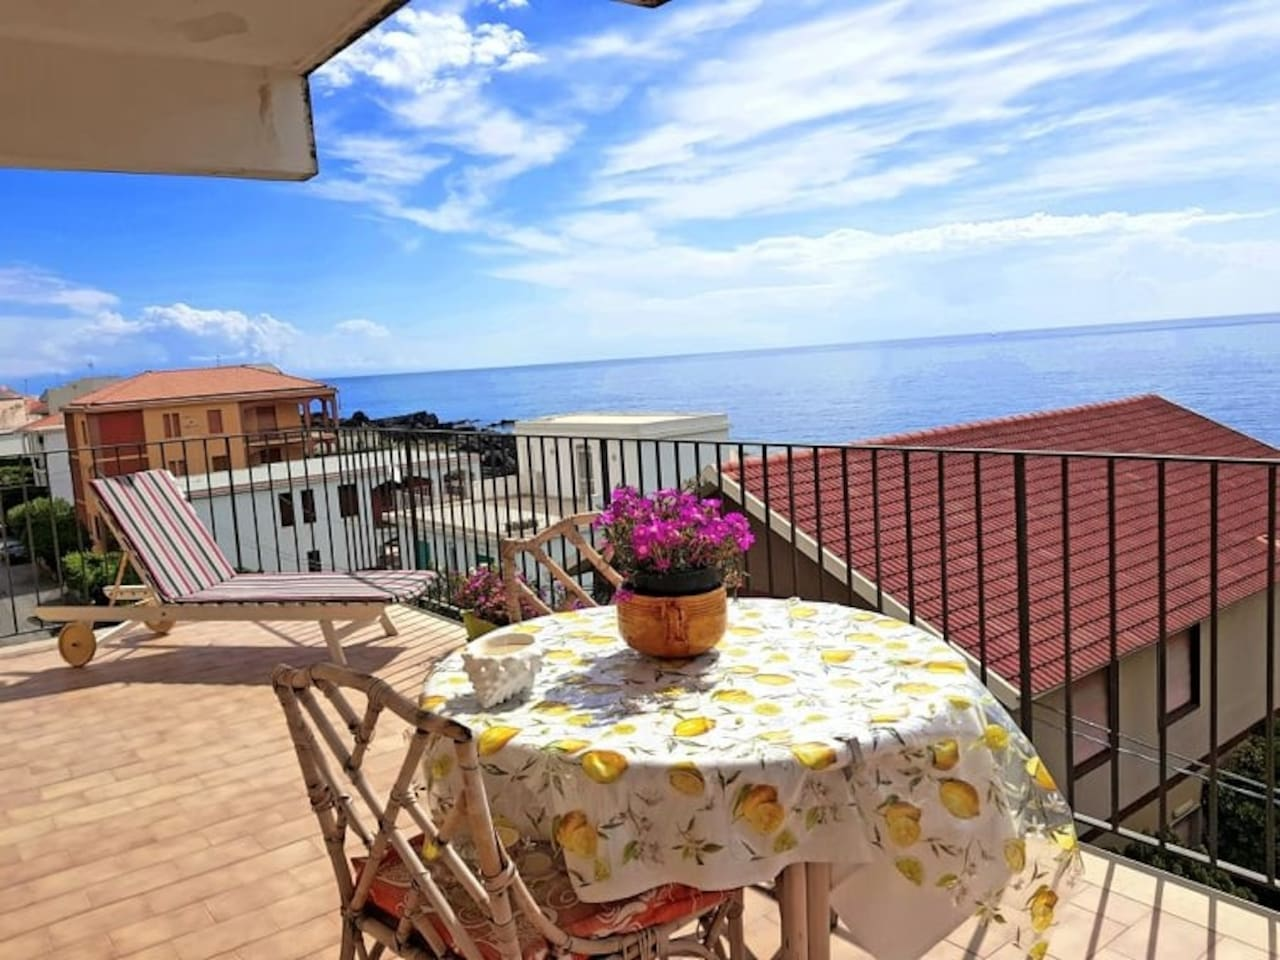 Terasse vue sur mer Terrace view on the sea